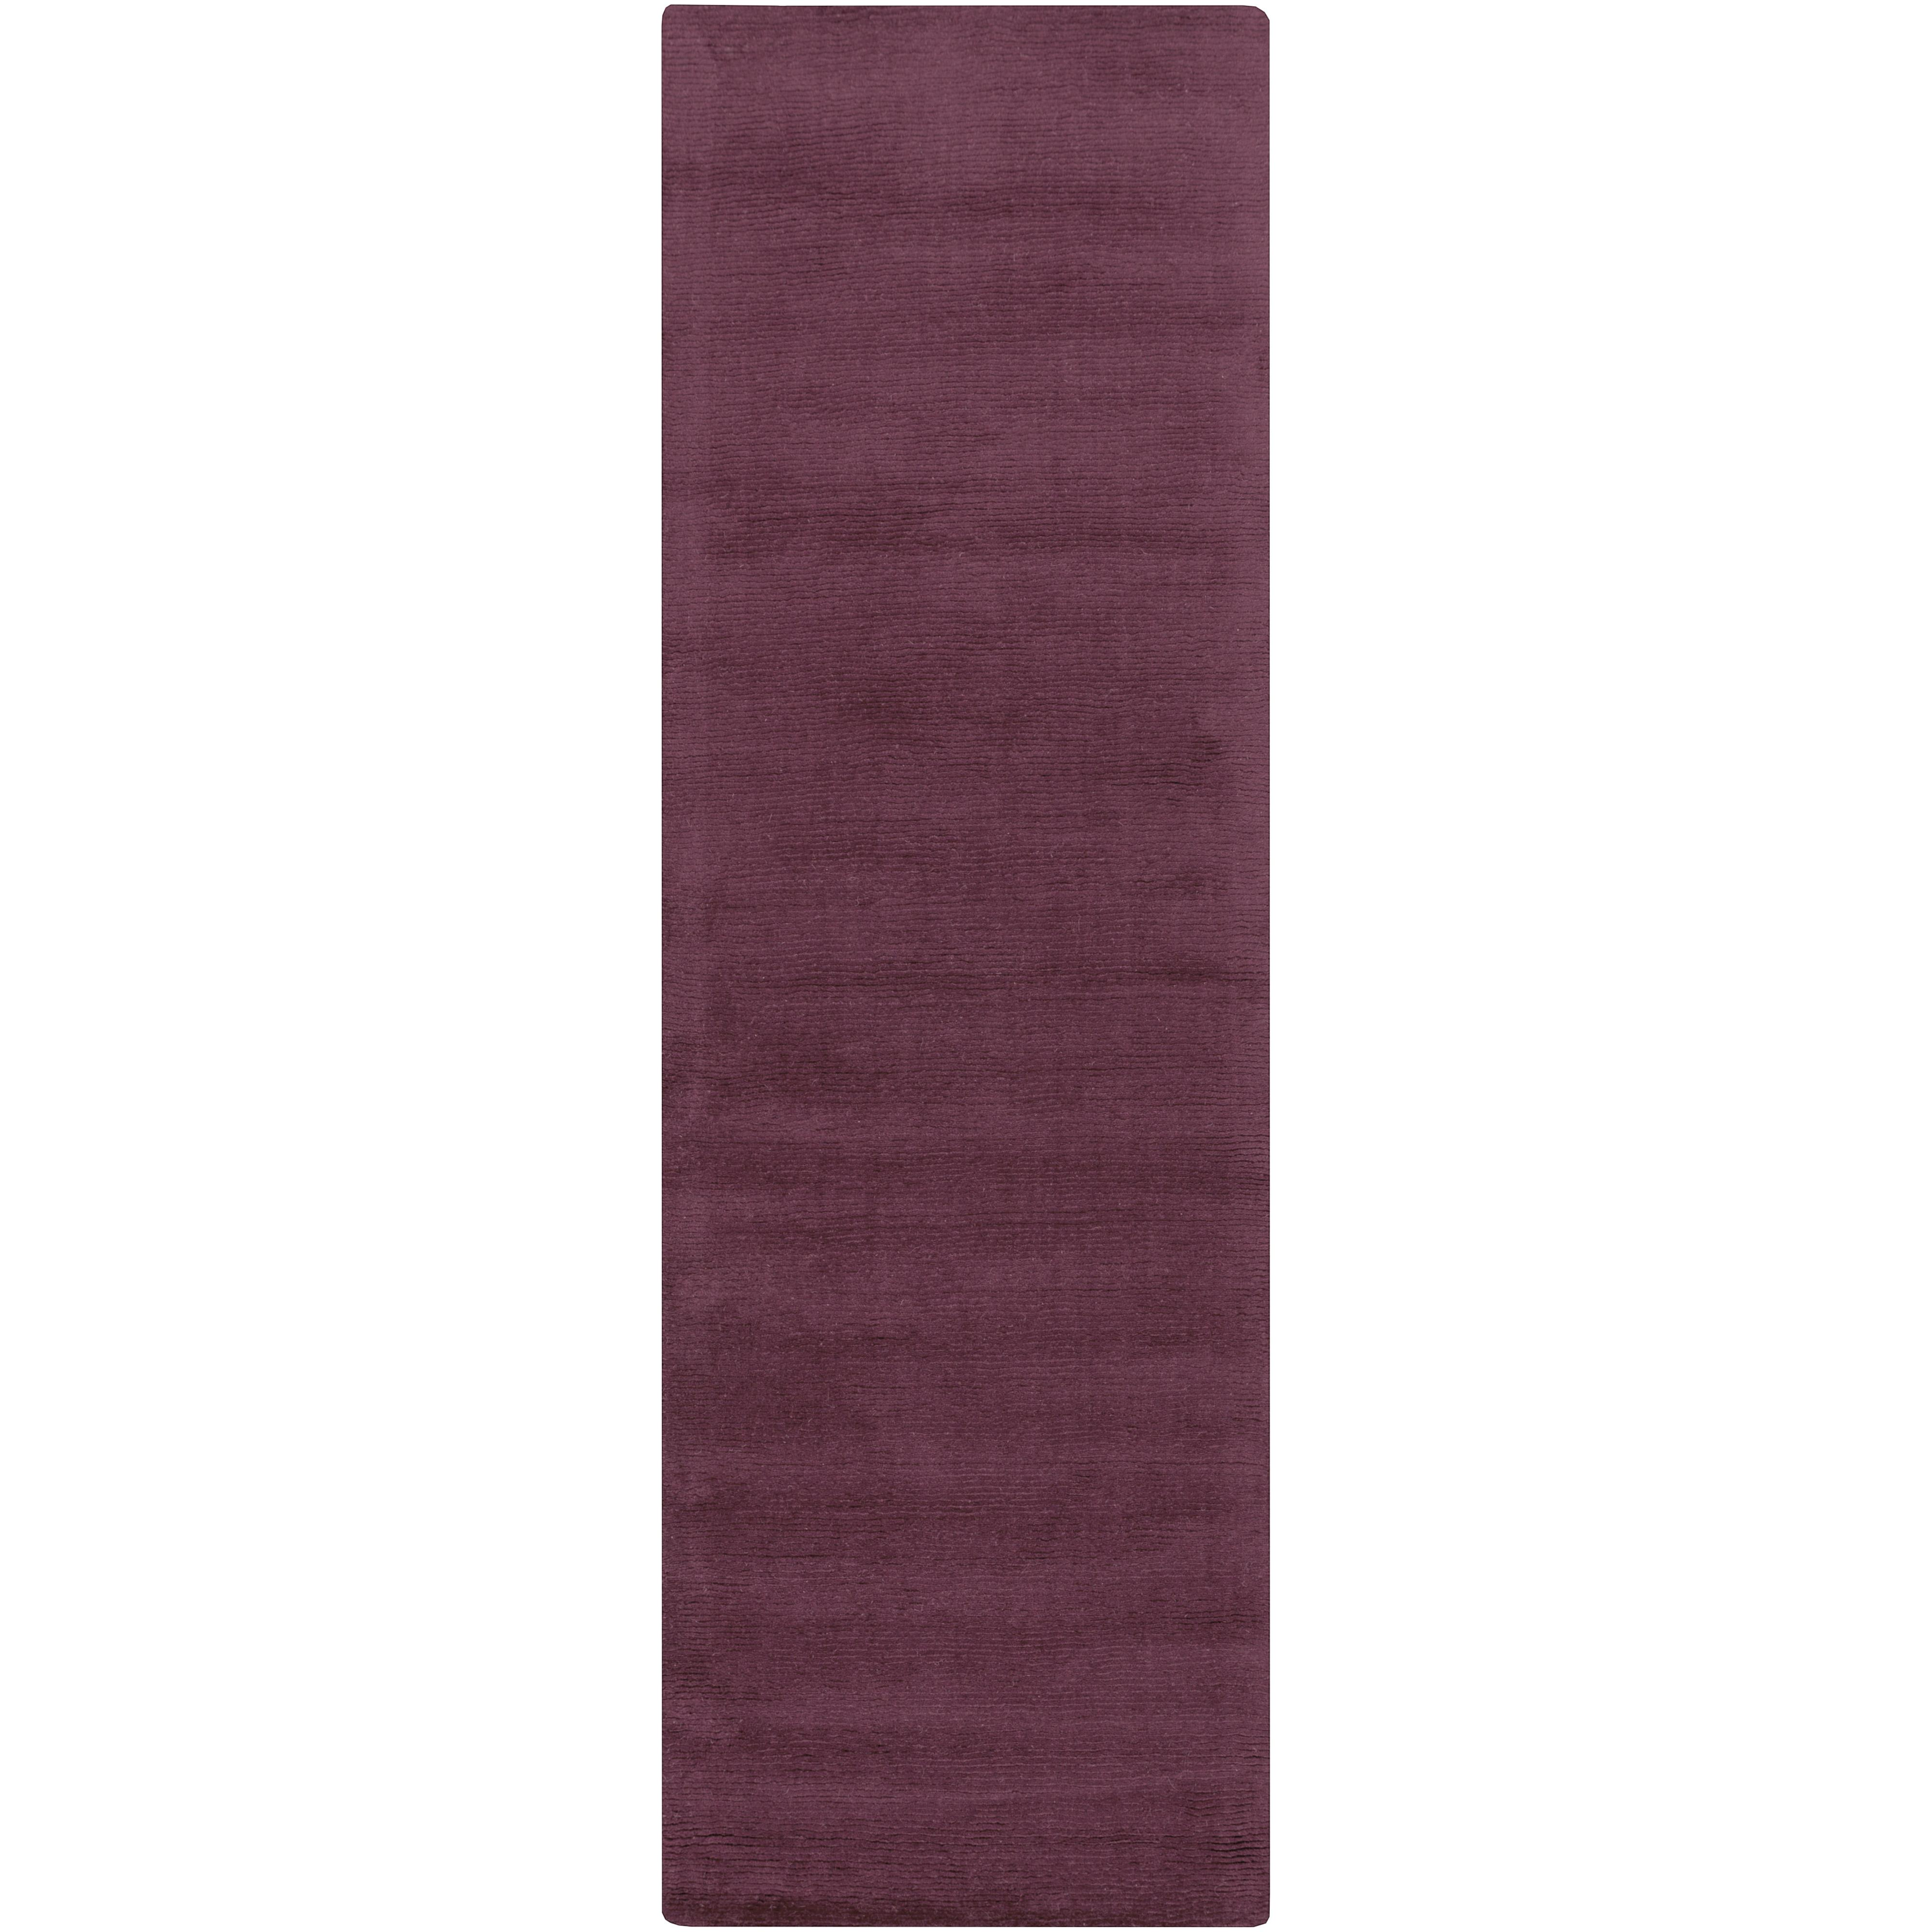 "Surya Mystique 2'6"" x 8' - Item Number: M5326-268"